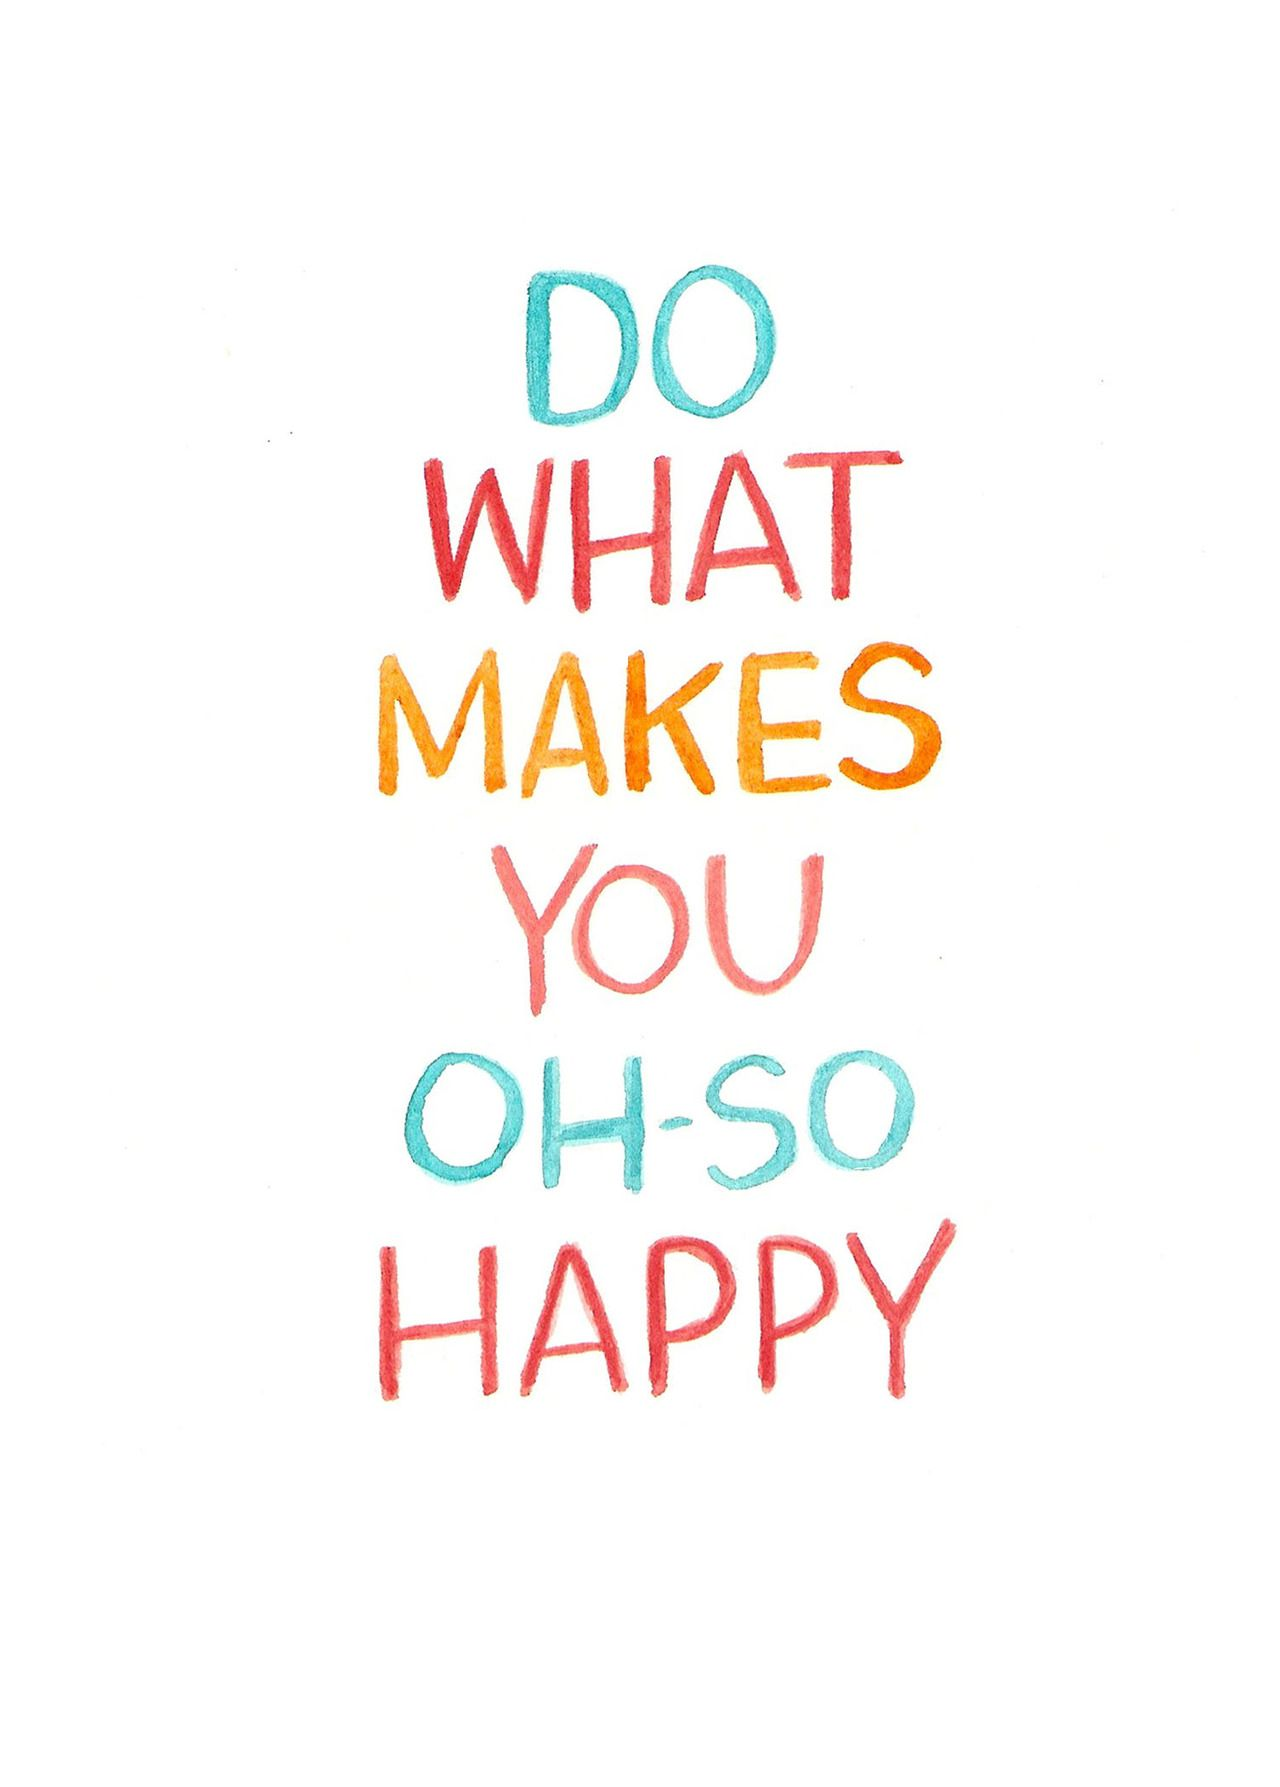 What makes you ohso happy? (via theglitterguide) Words